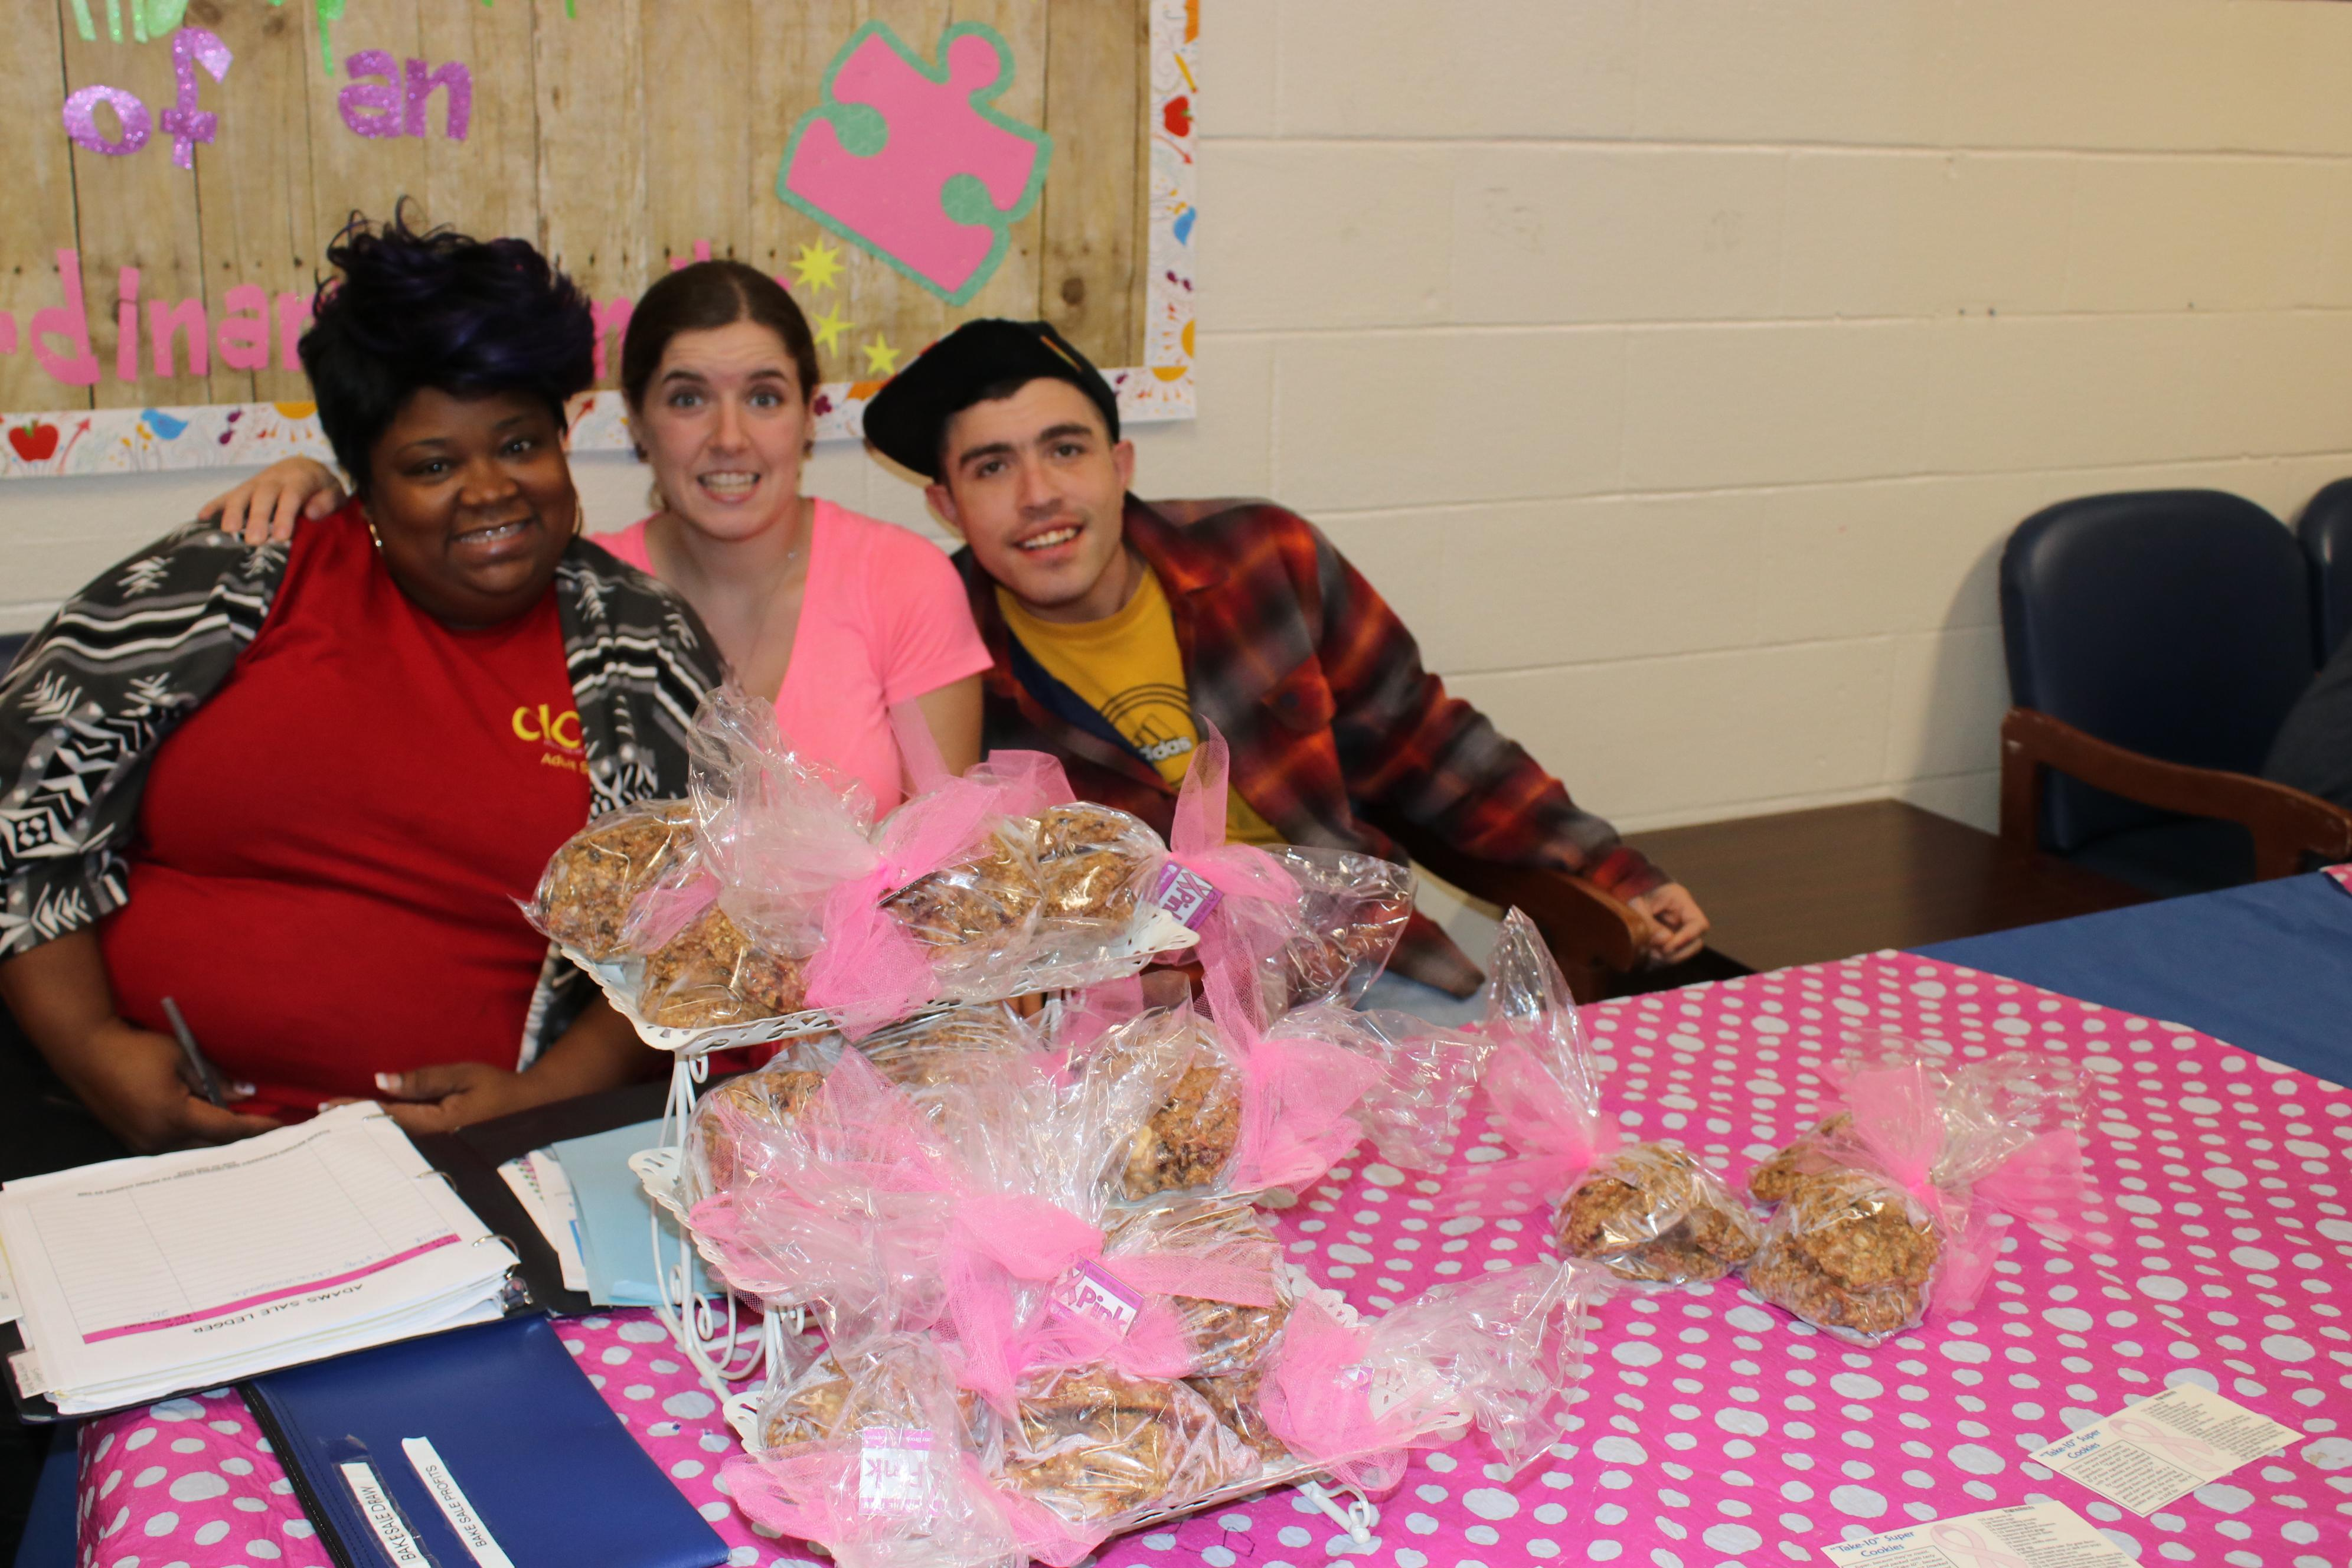 Group at breast cancer bake sale